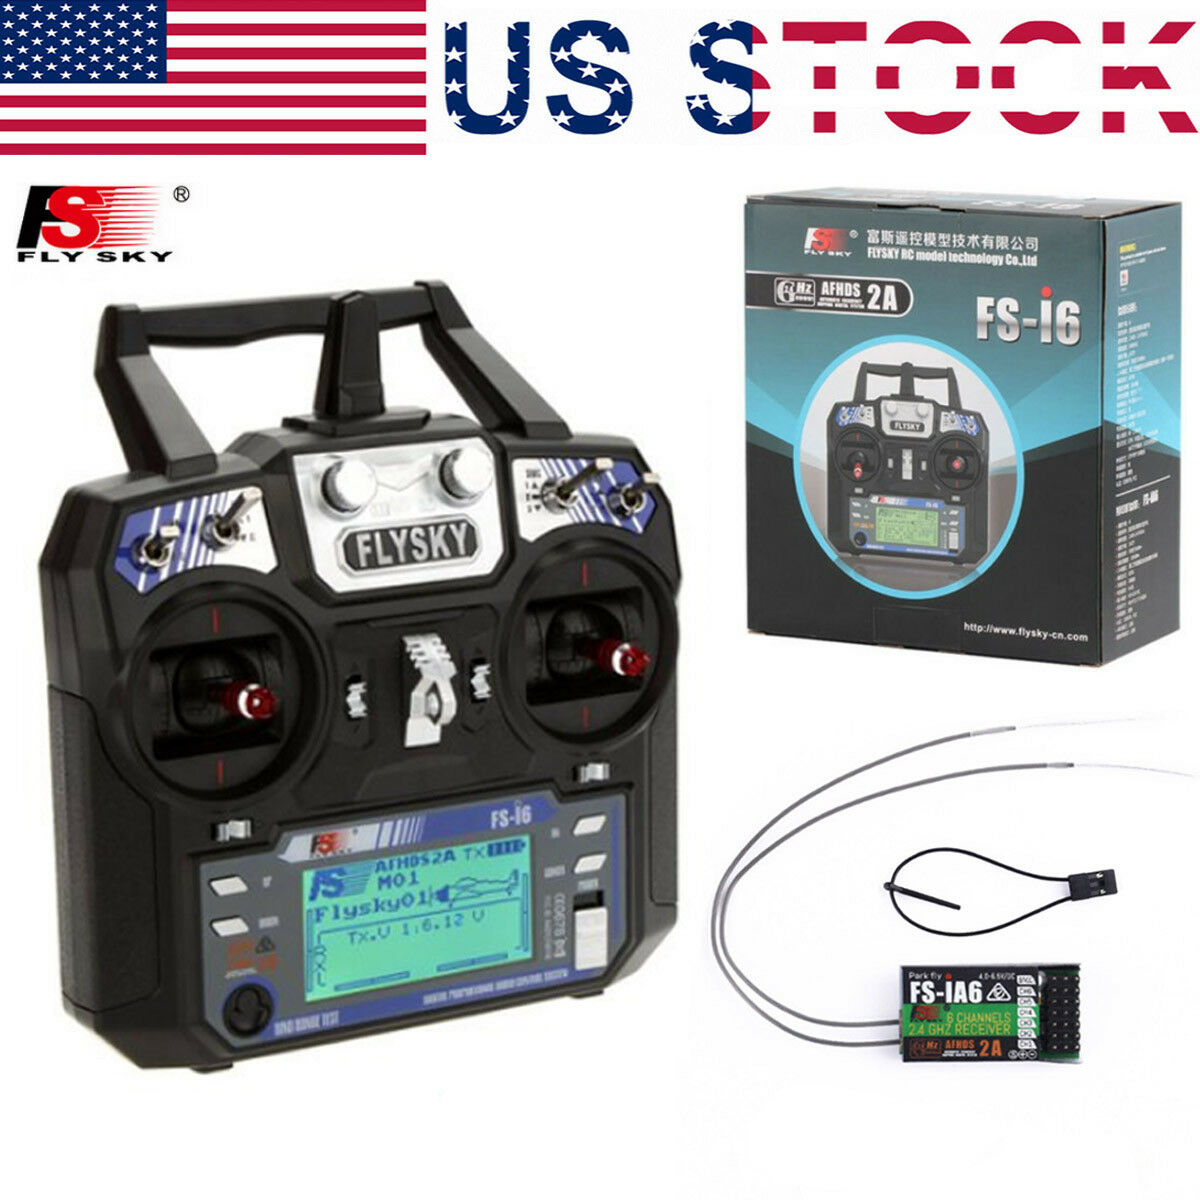 FlySky FS-i6 2.4G 6CH AFHDS RC Radion Transmitter With FS-iA6 Receiver for RC